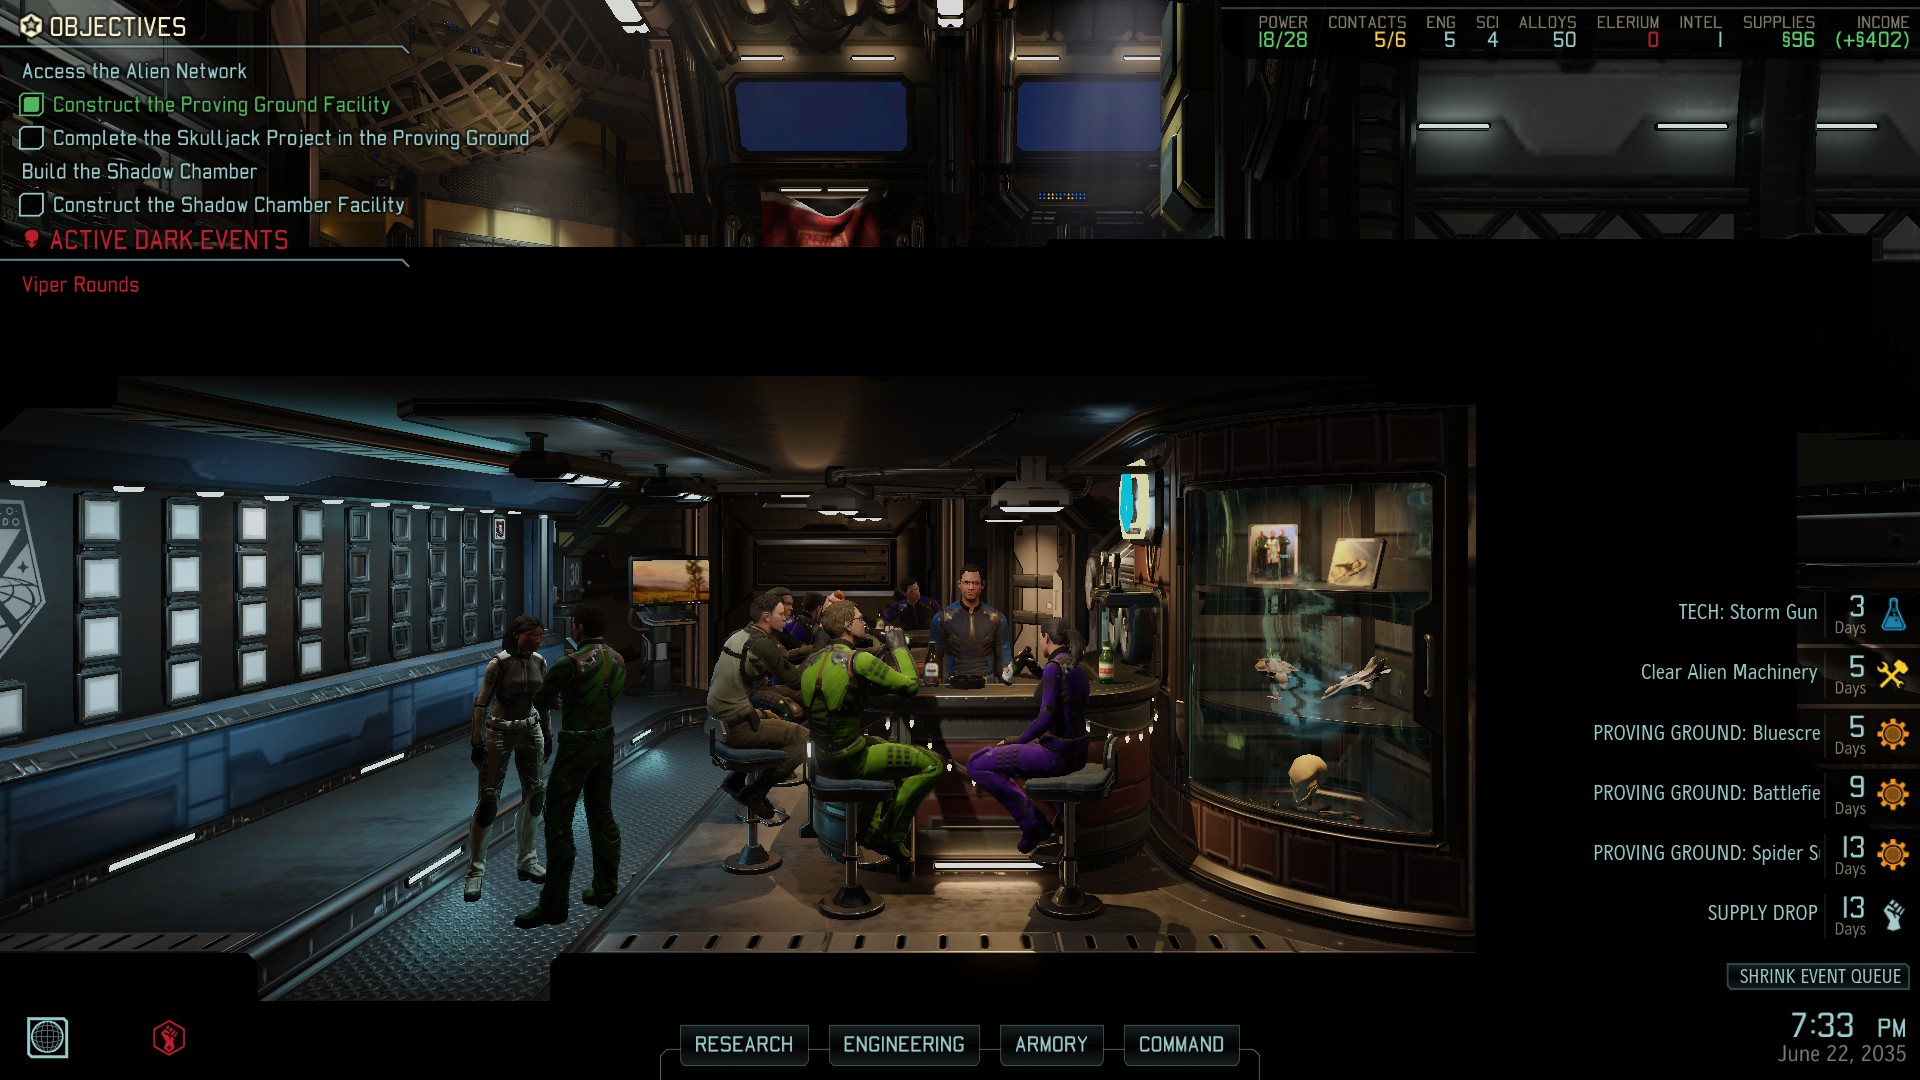 XCOM 2 Memorial bar screenshot.jpg